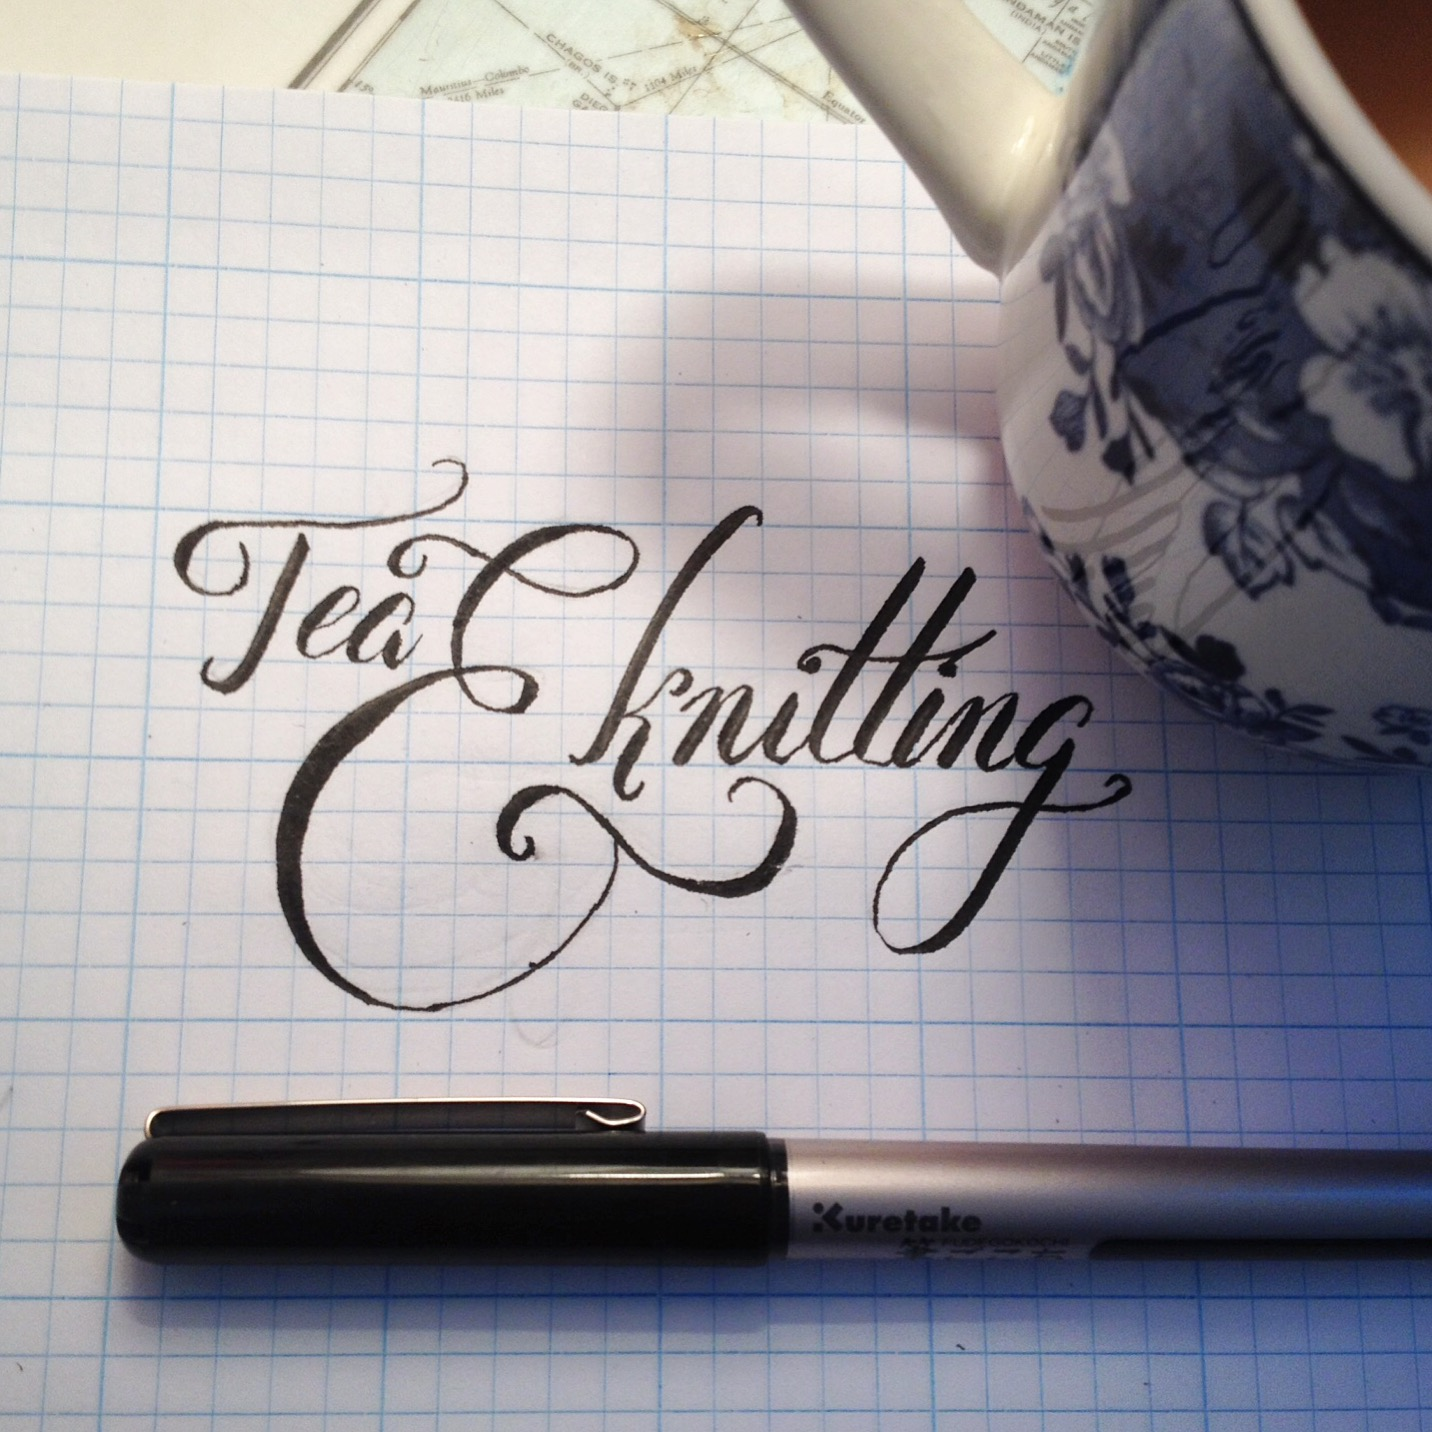 hand lettering tea and knitting practice on graph paper kuretake